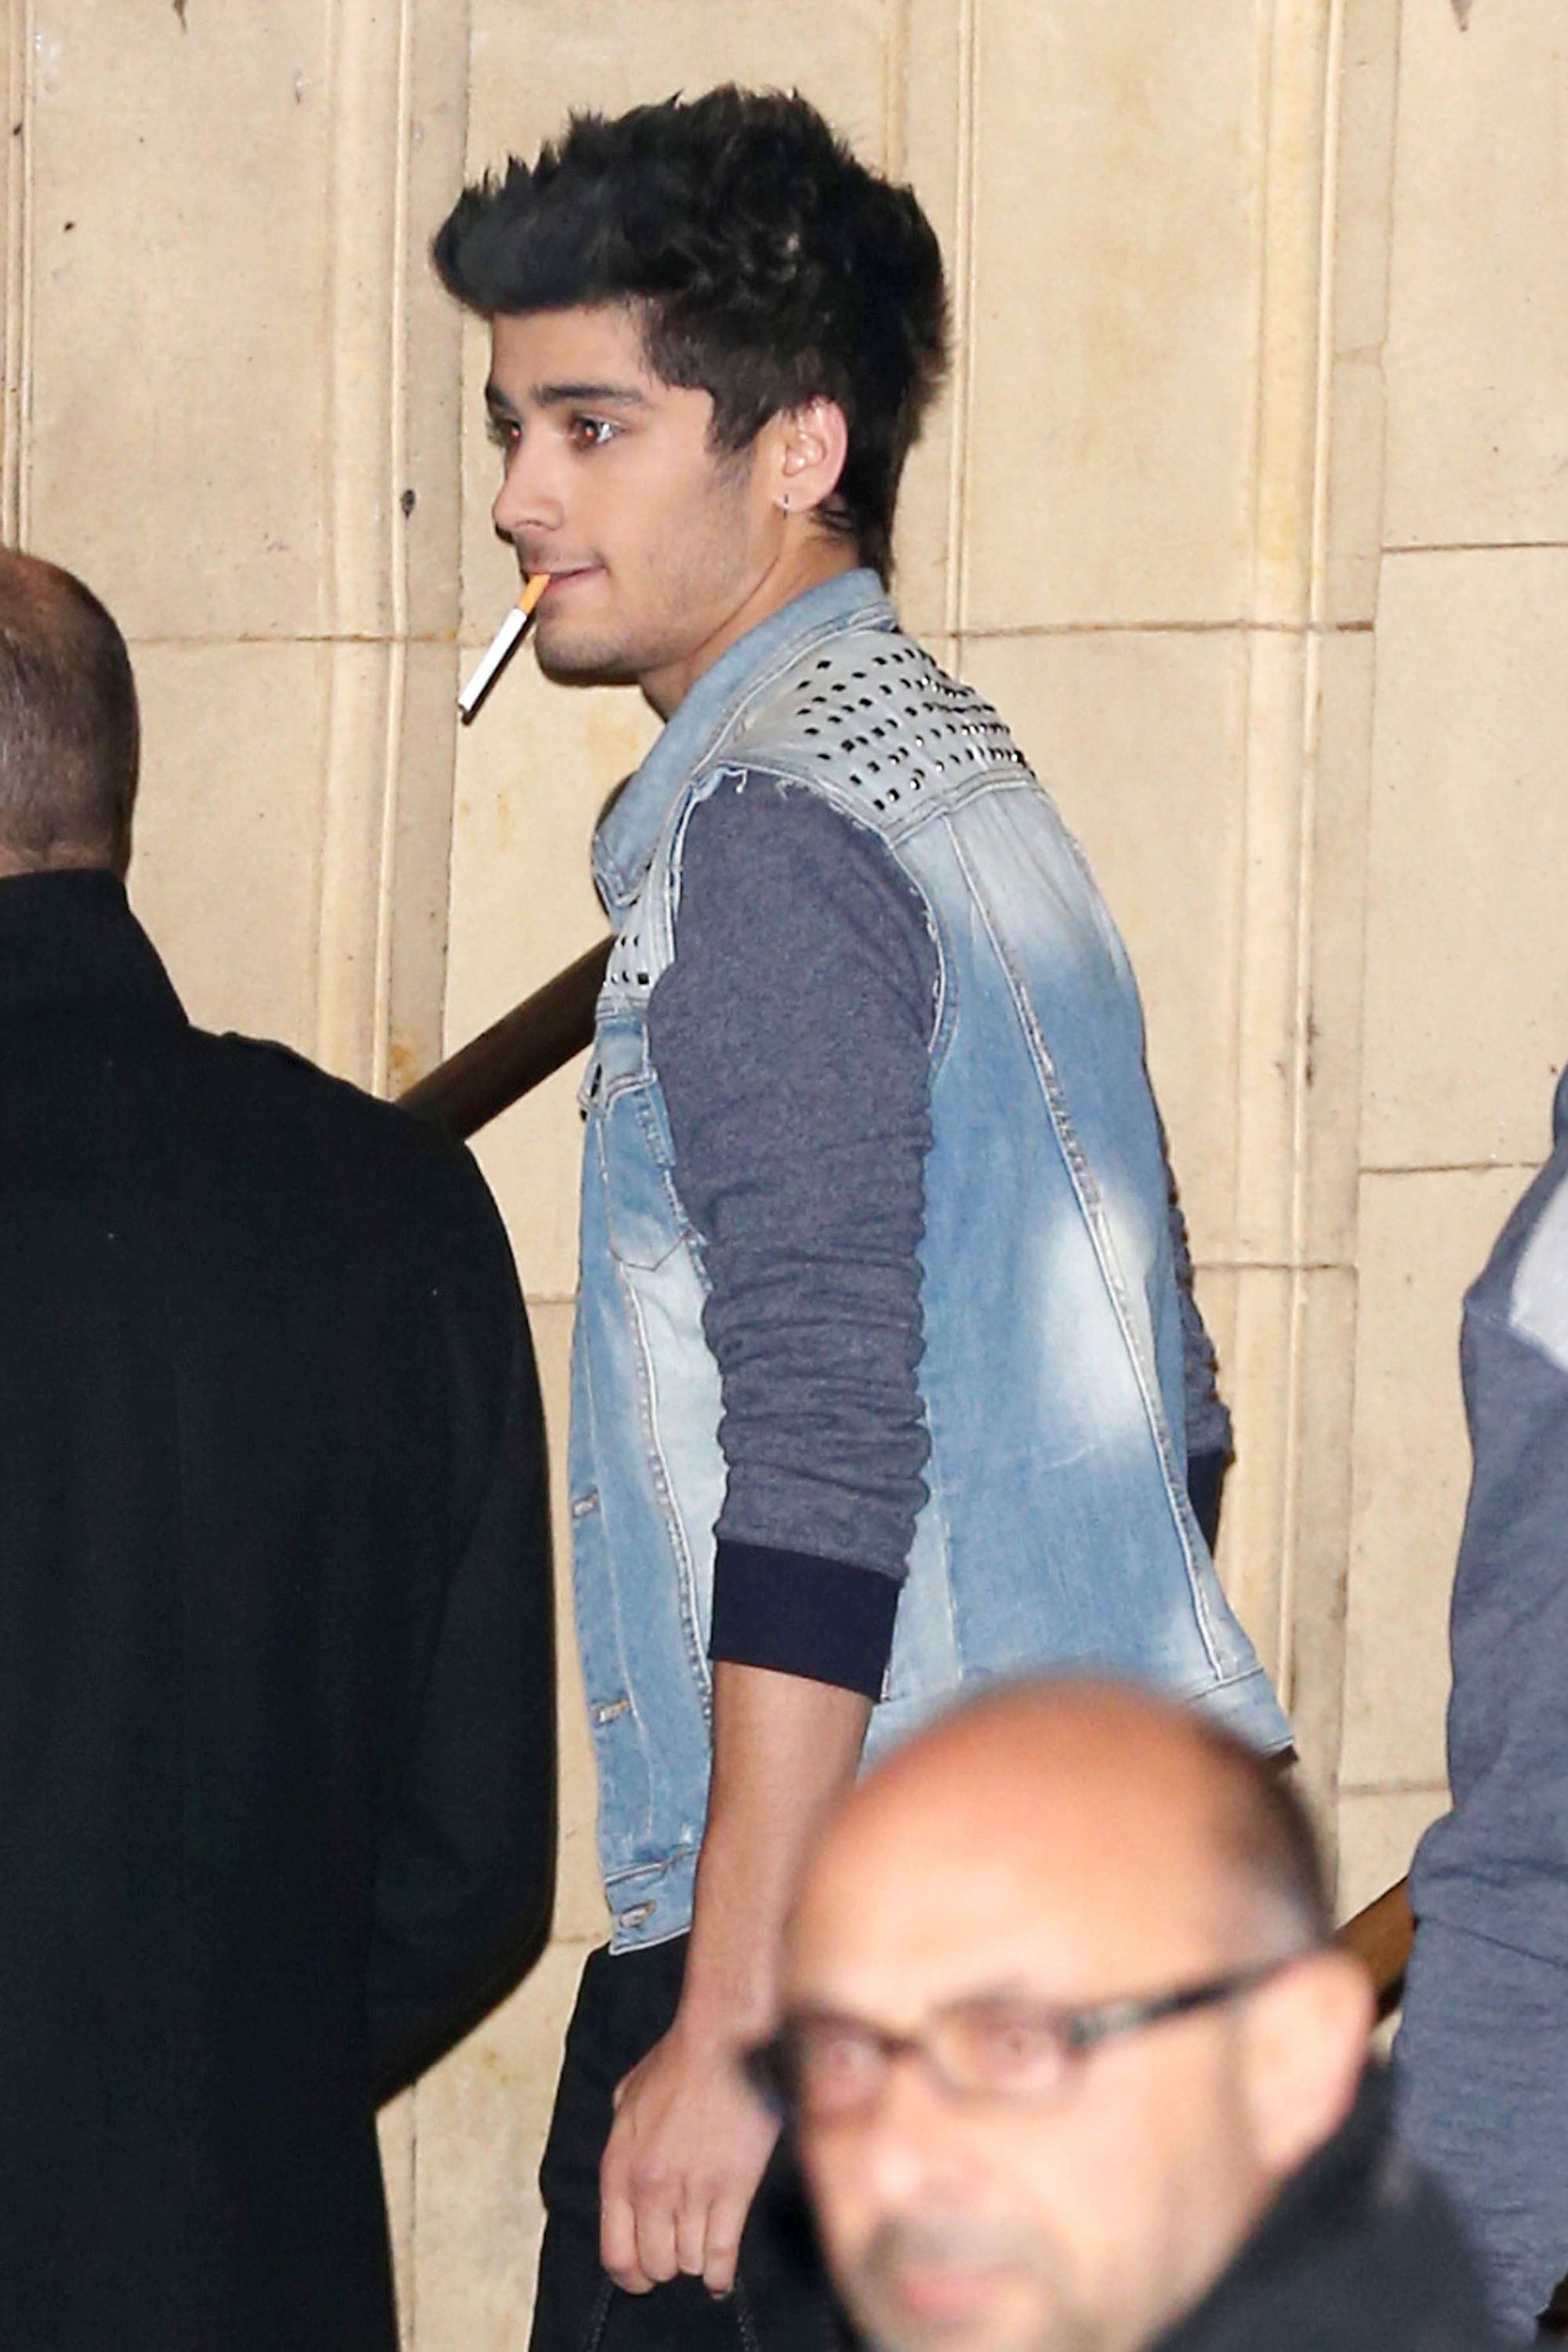 Zayn Malik of One Direction, leaving the Royal Albert Hall after performing at The Royal Variety Performance. London, England - 19.11.12  Featuring: Zayn Malik of One Direction Where: London, United Kingdom When: 19 Nov 2012 Credit: WENN